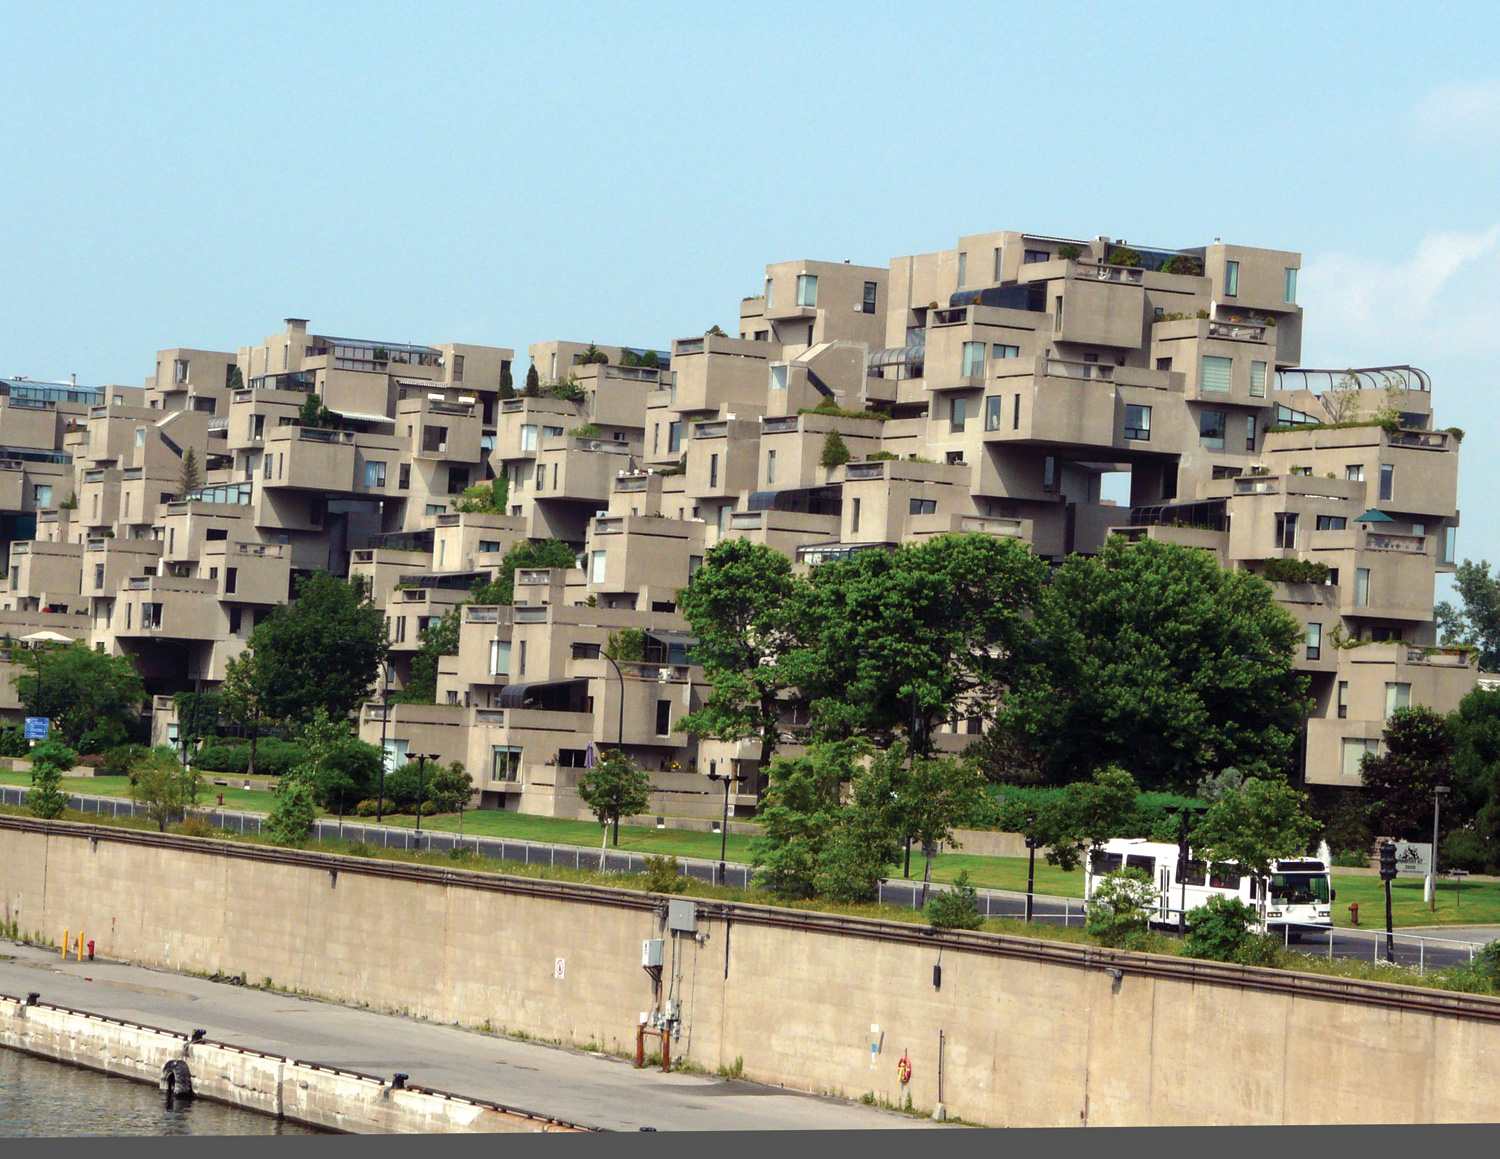 Montreal canada habitat 67 summer season for Habitat 67 architecture